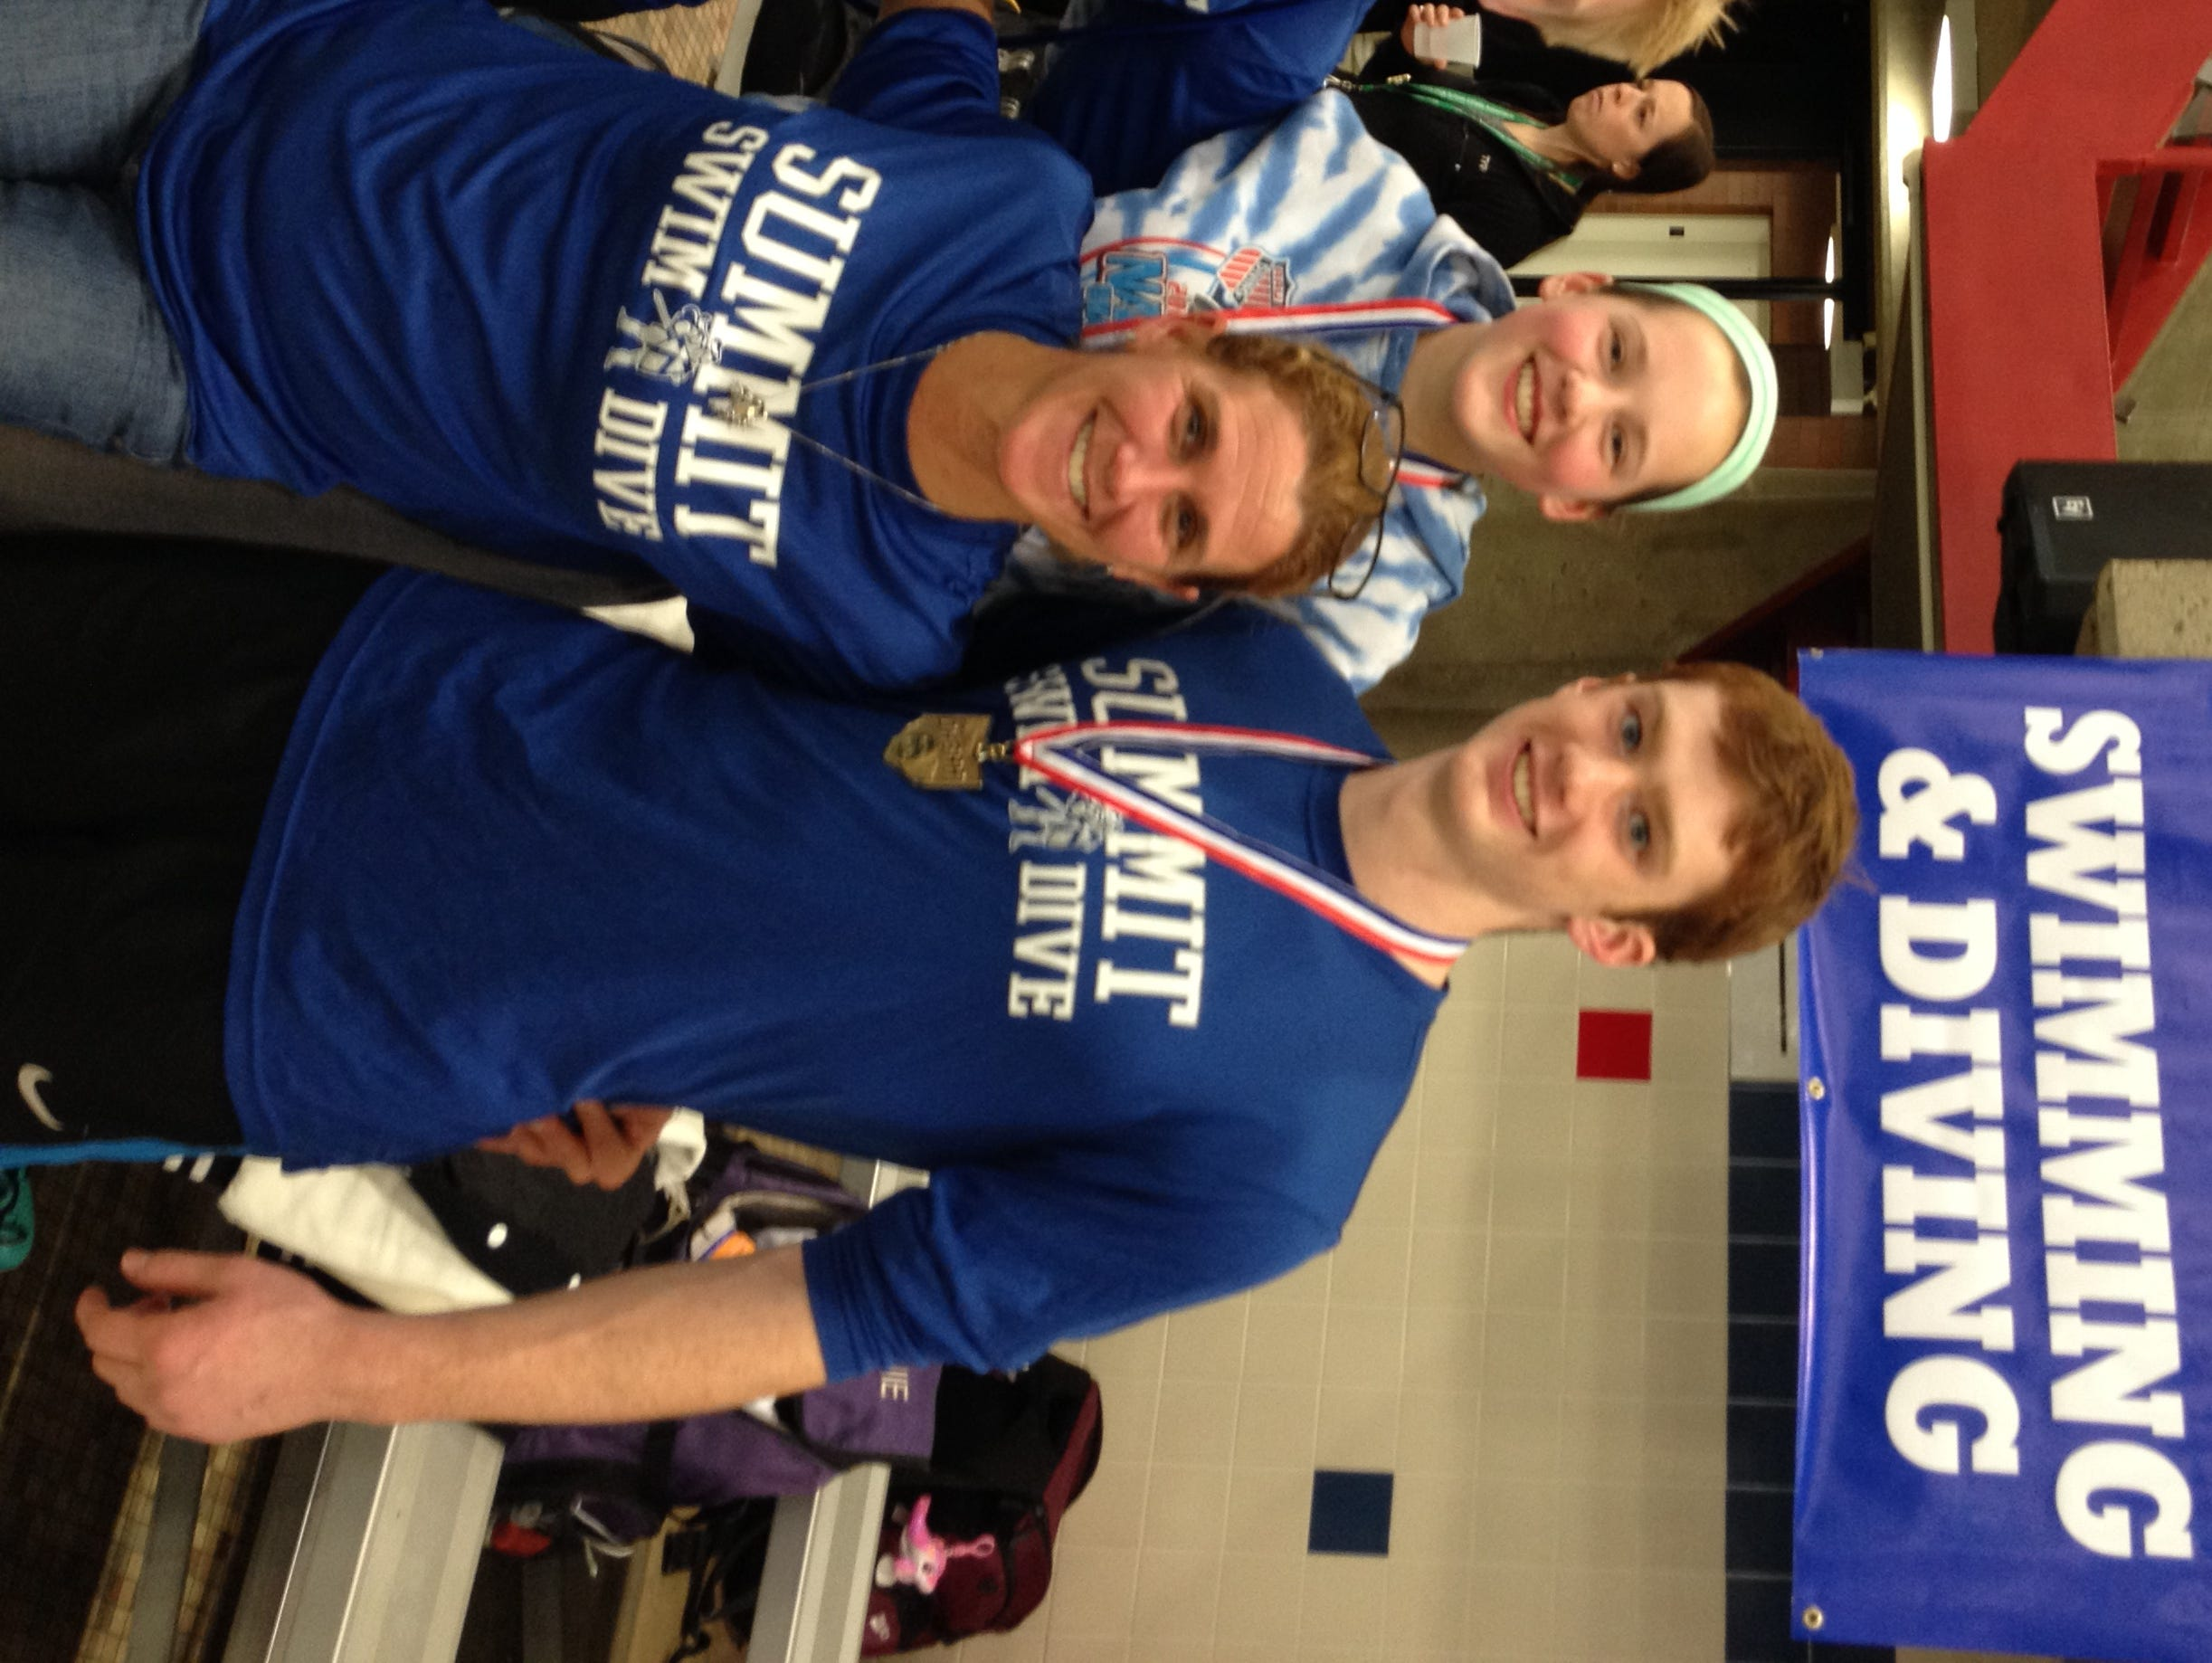 Summit Country Day's state divers included, from left: Mitch Reinhard, Emma Hellmann and state champ Stewart Spanbauer, with their coach Lori Rapp in front.